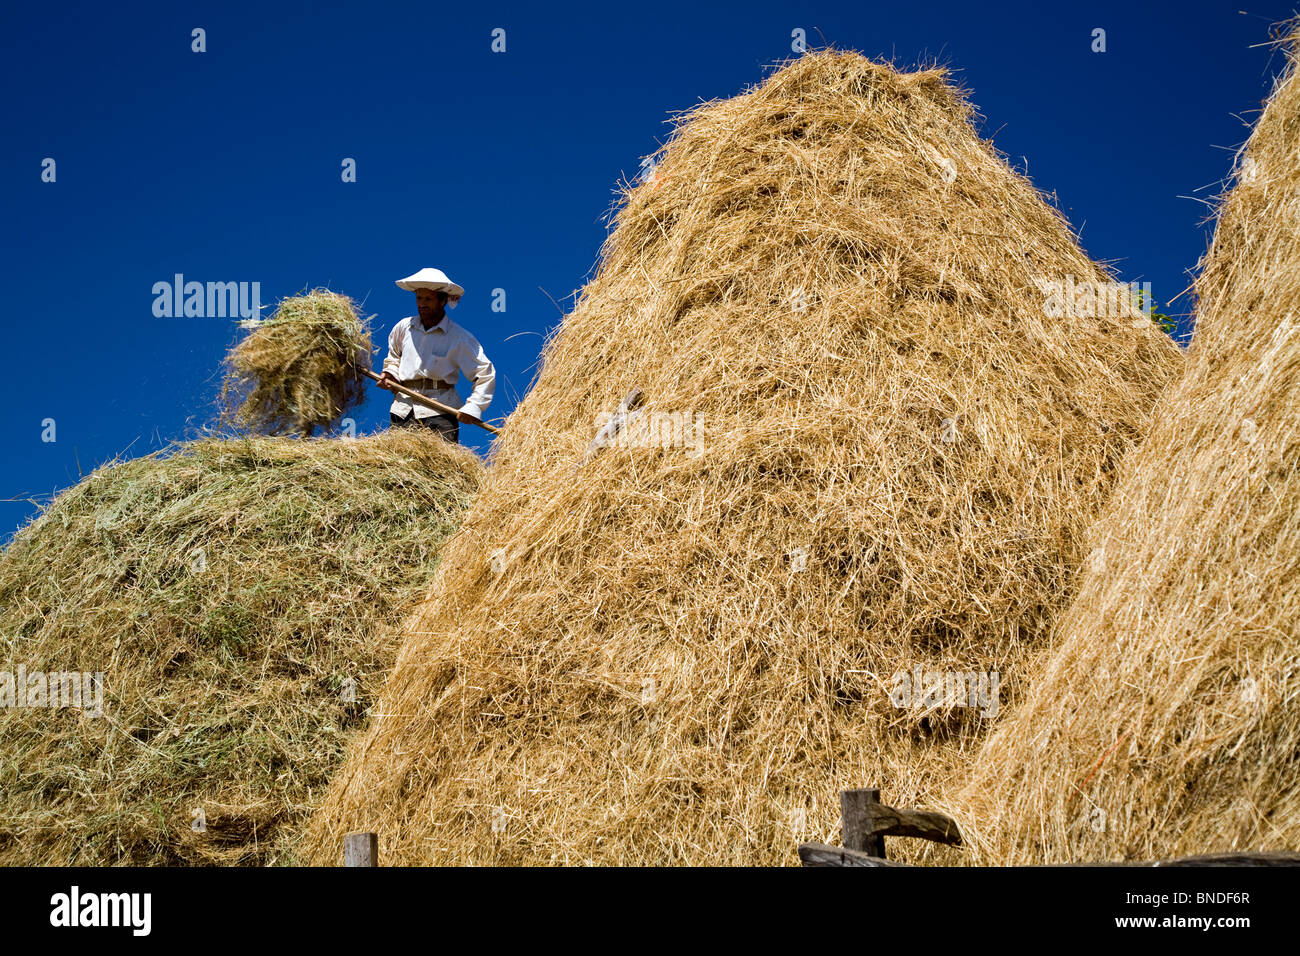 Straws being piled in the country side of Kirklareli Turkey - Stock Image